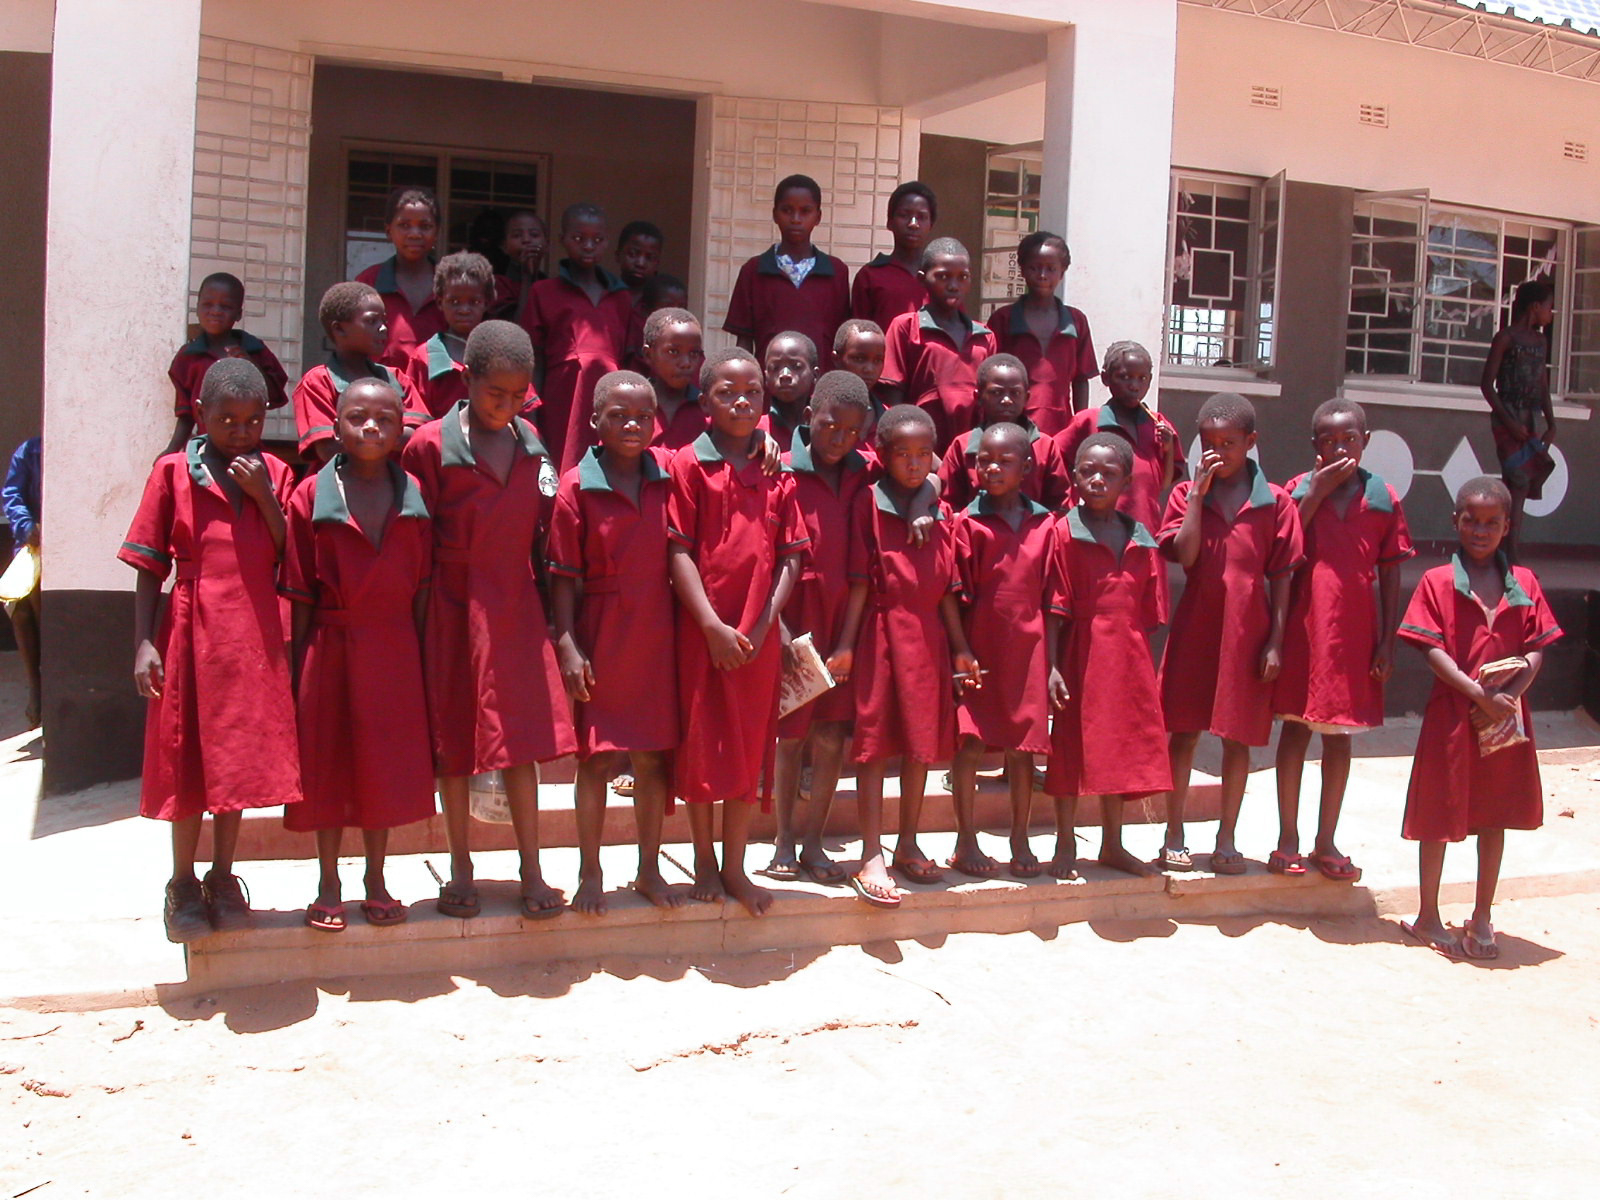 School uniforms donated in Europe made in Zambia